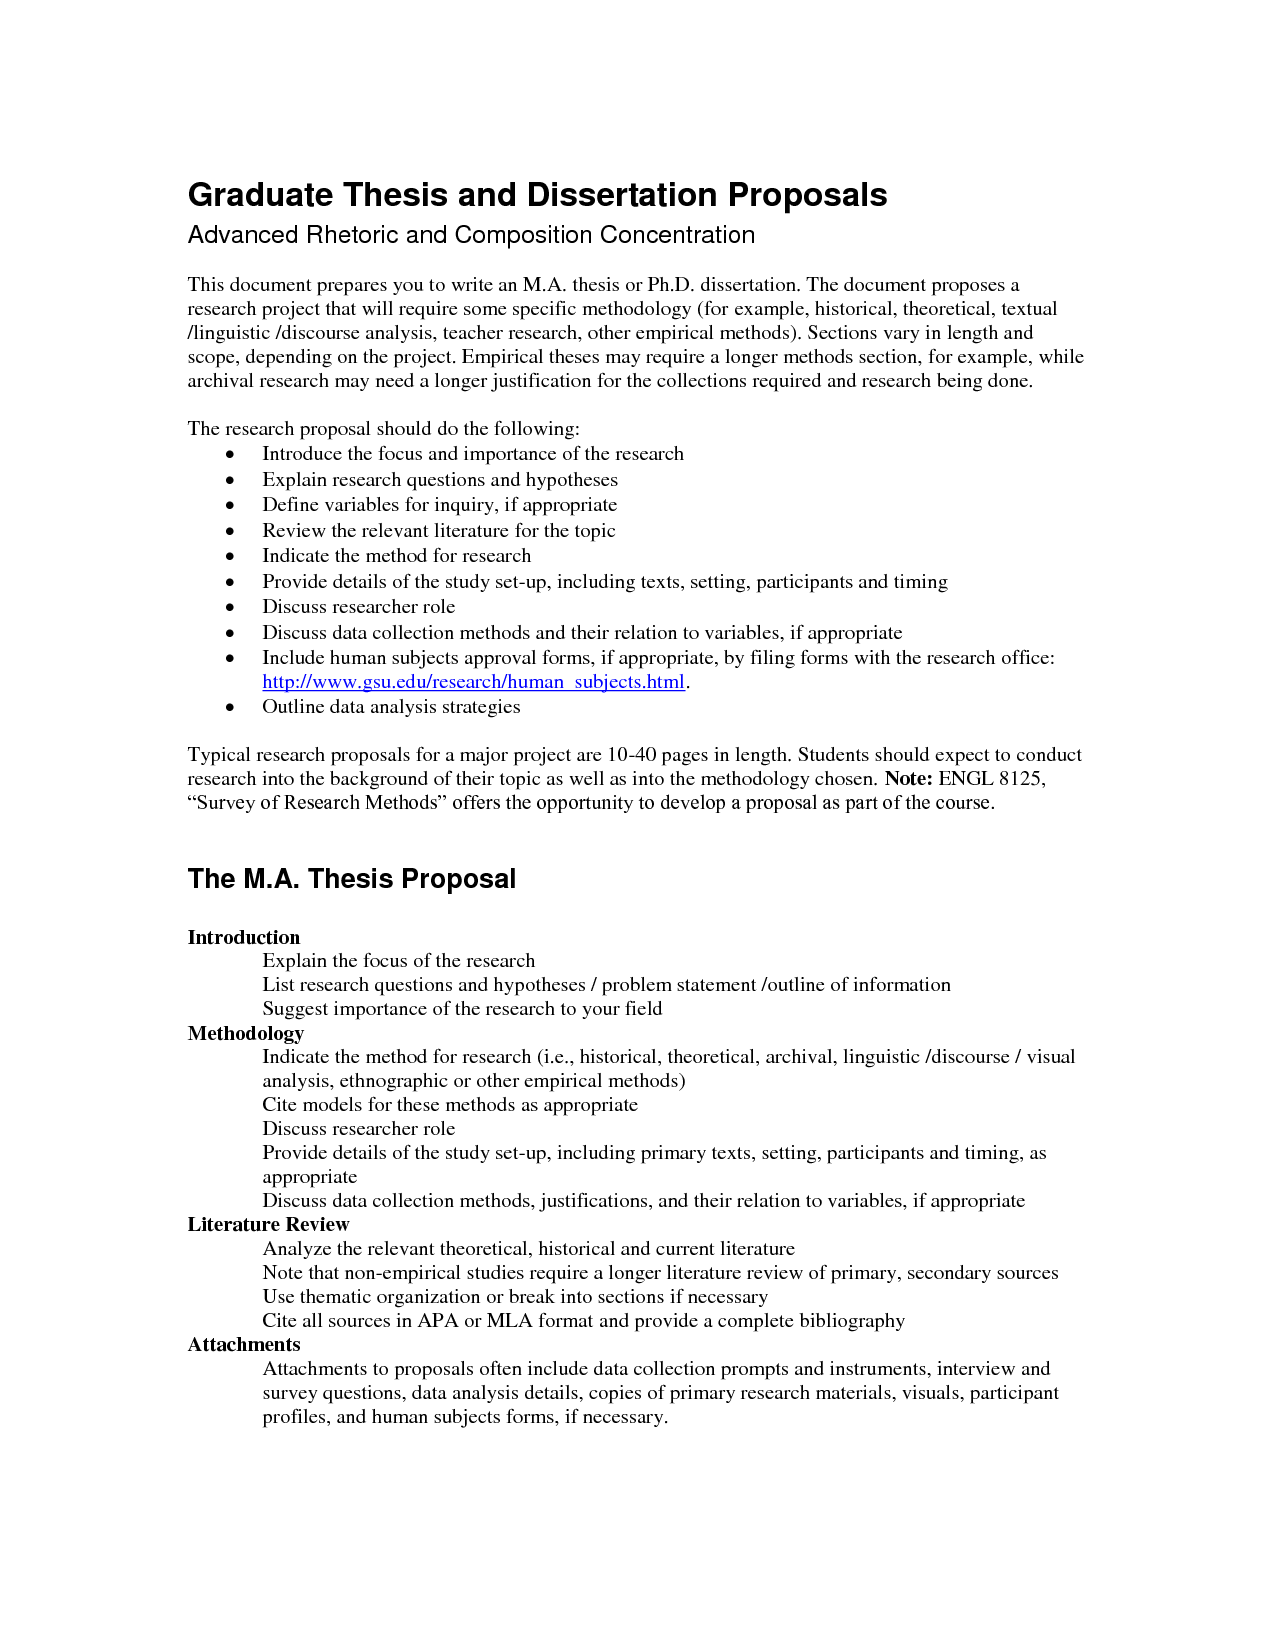 Guest services coordinator cover letter